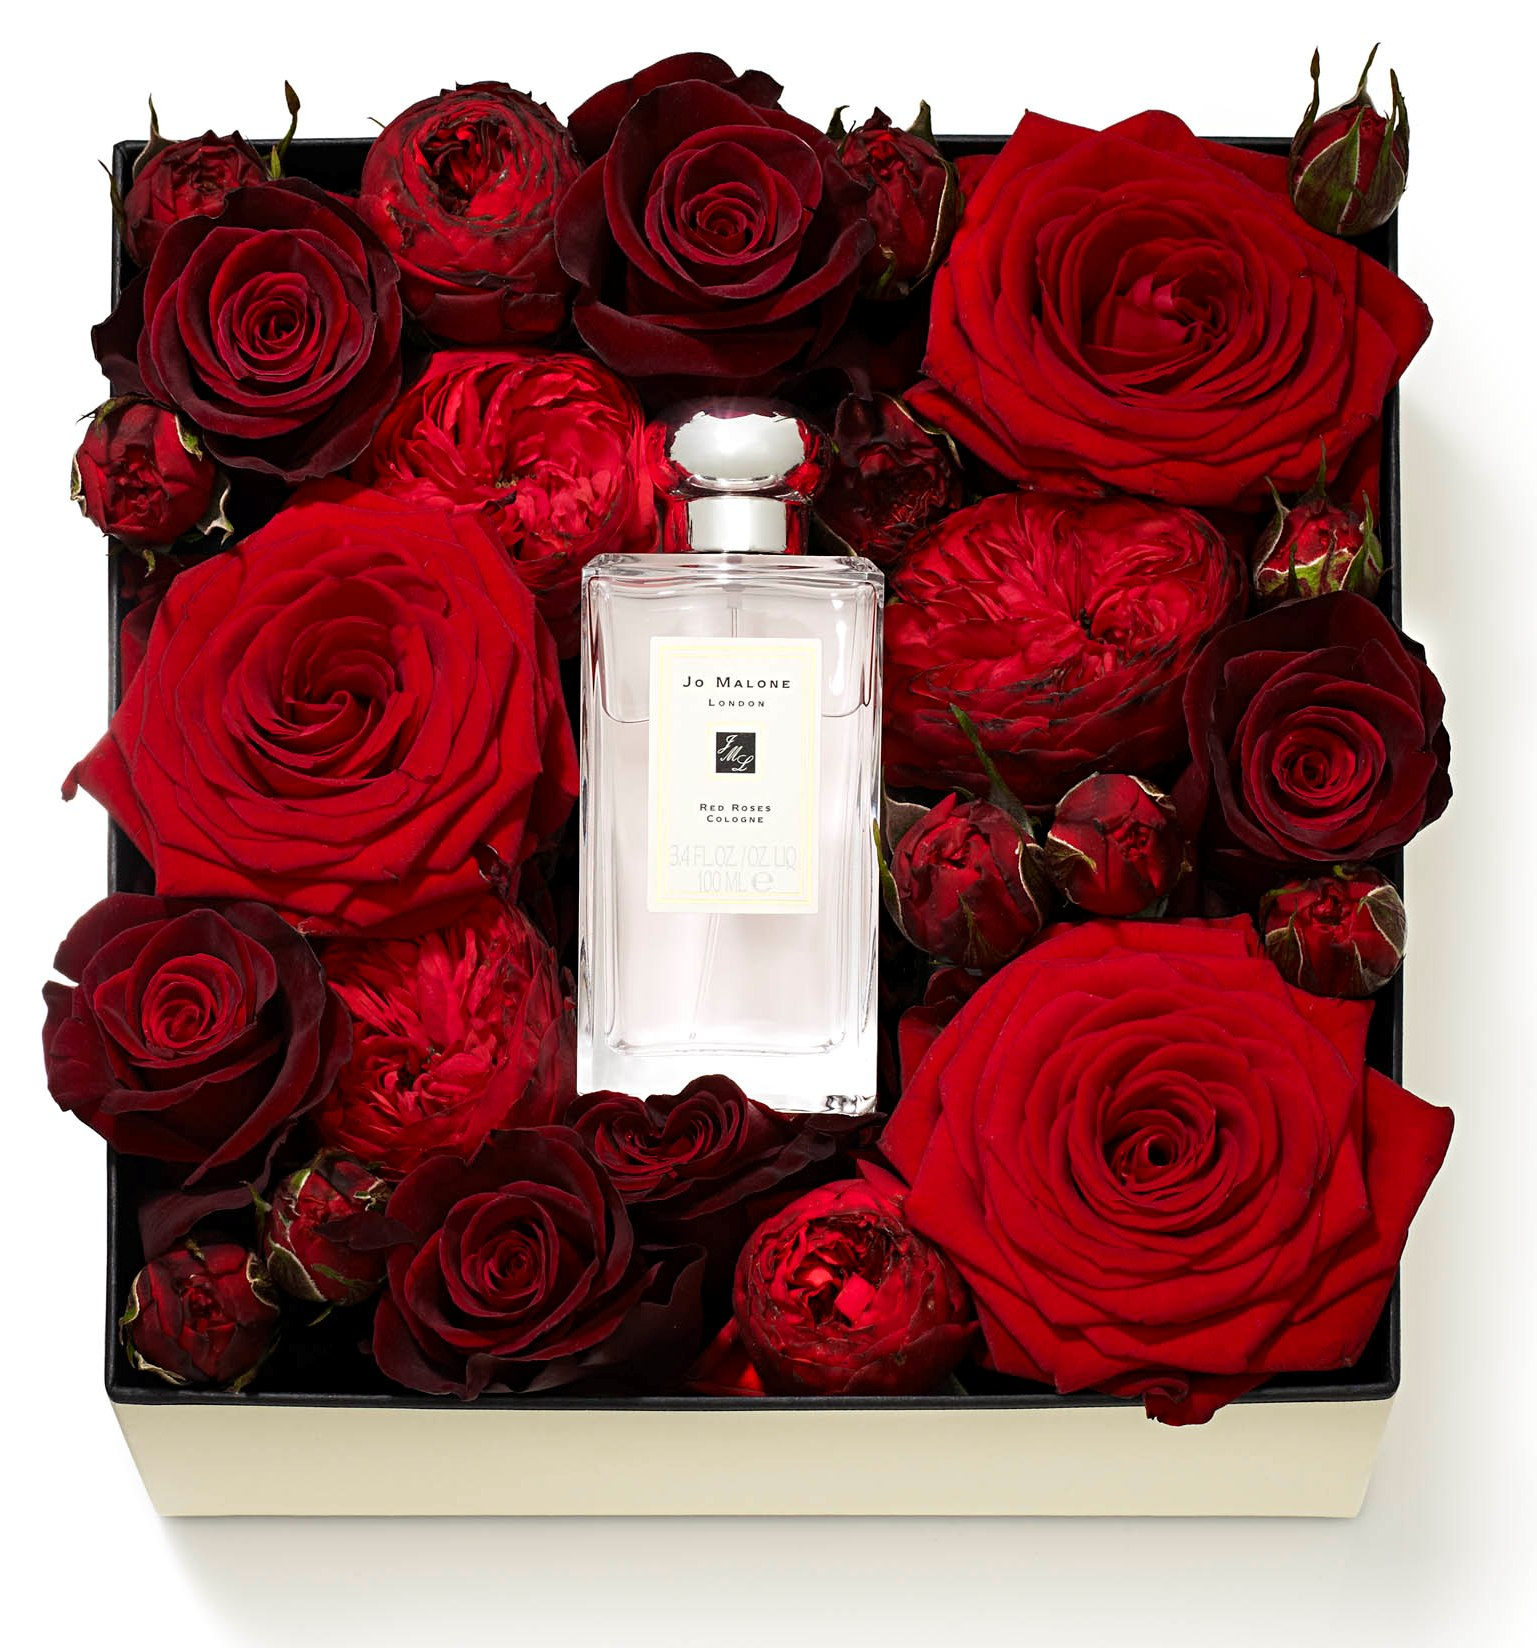 Jo Malone London Floral Boxes Red Roses